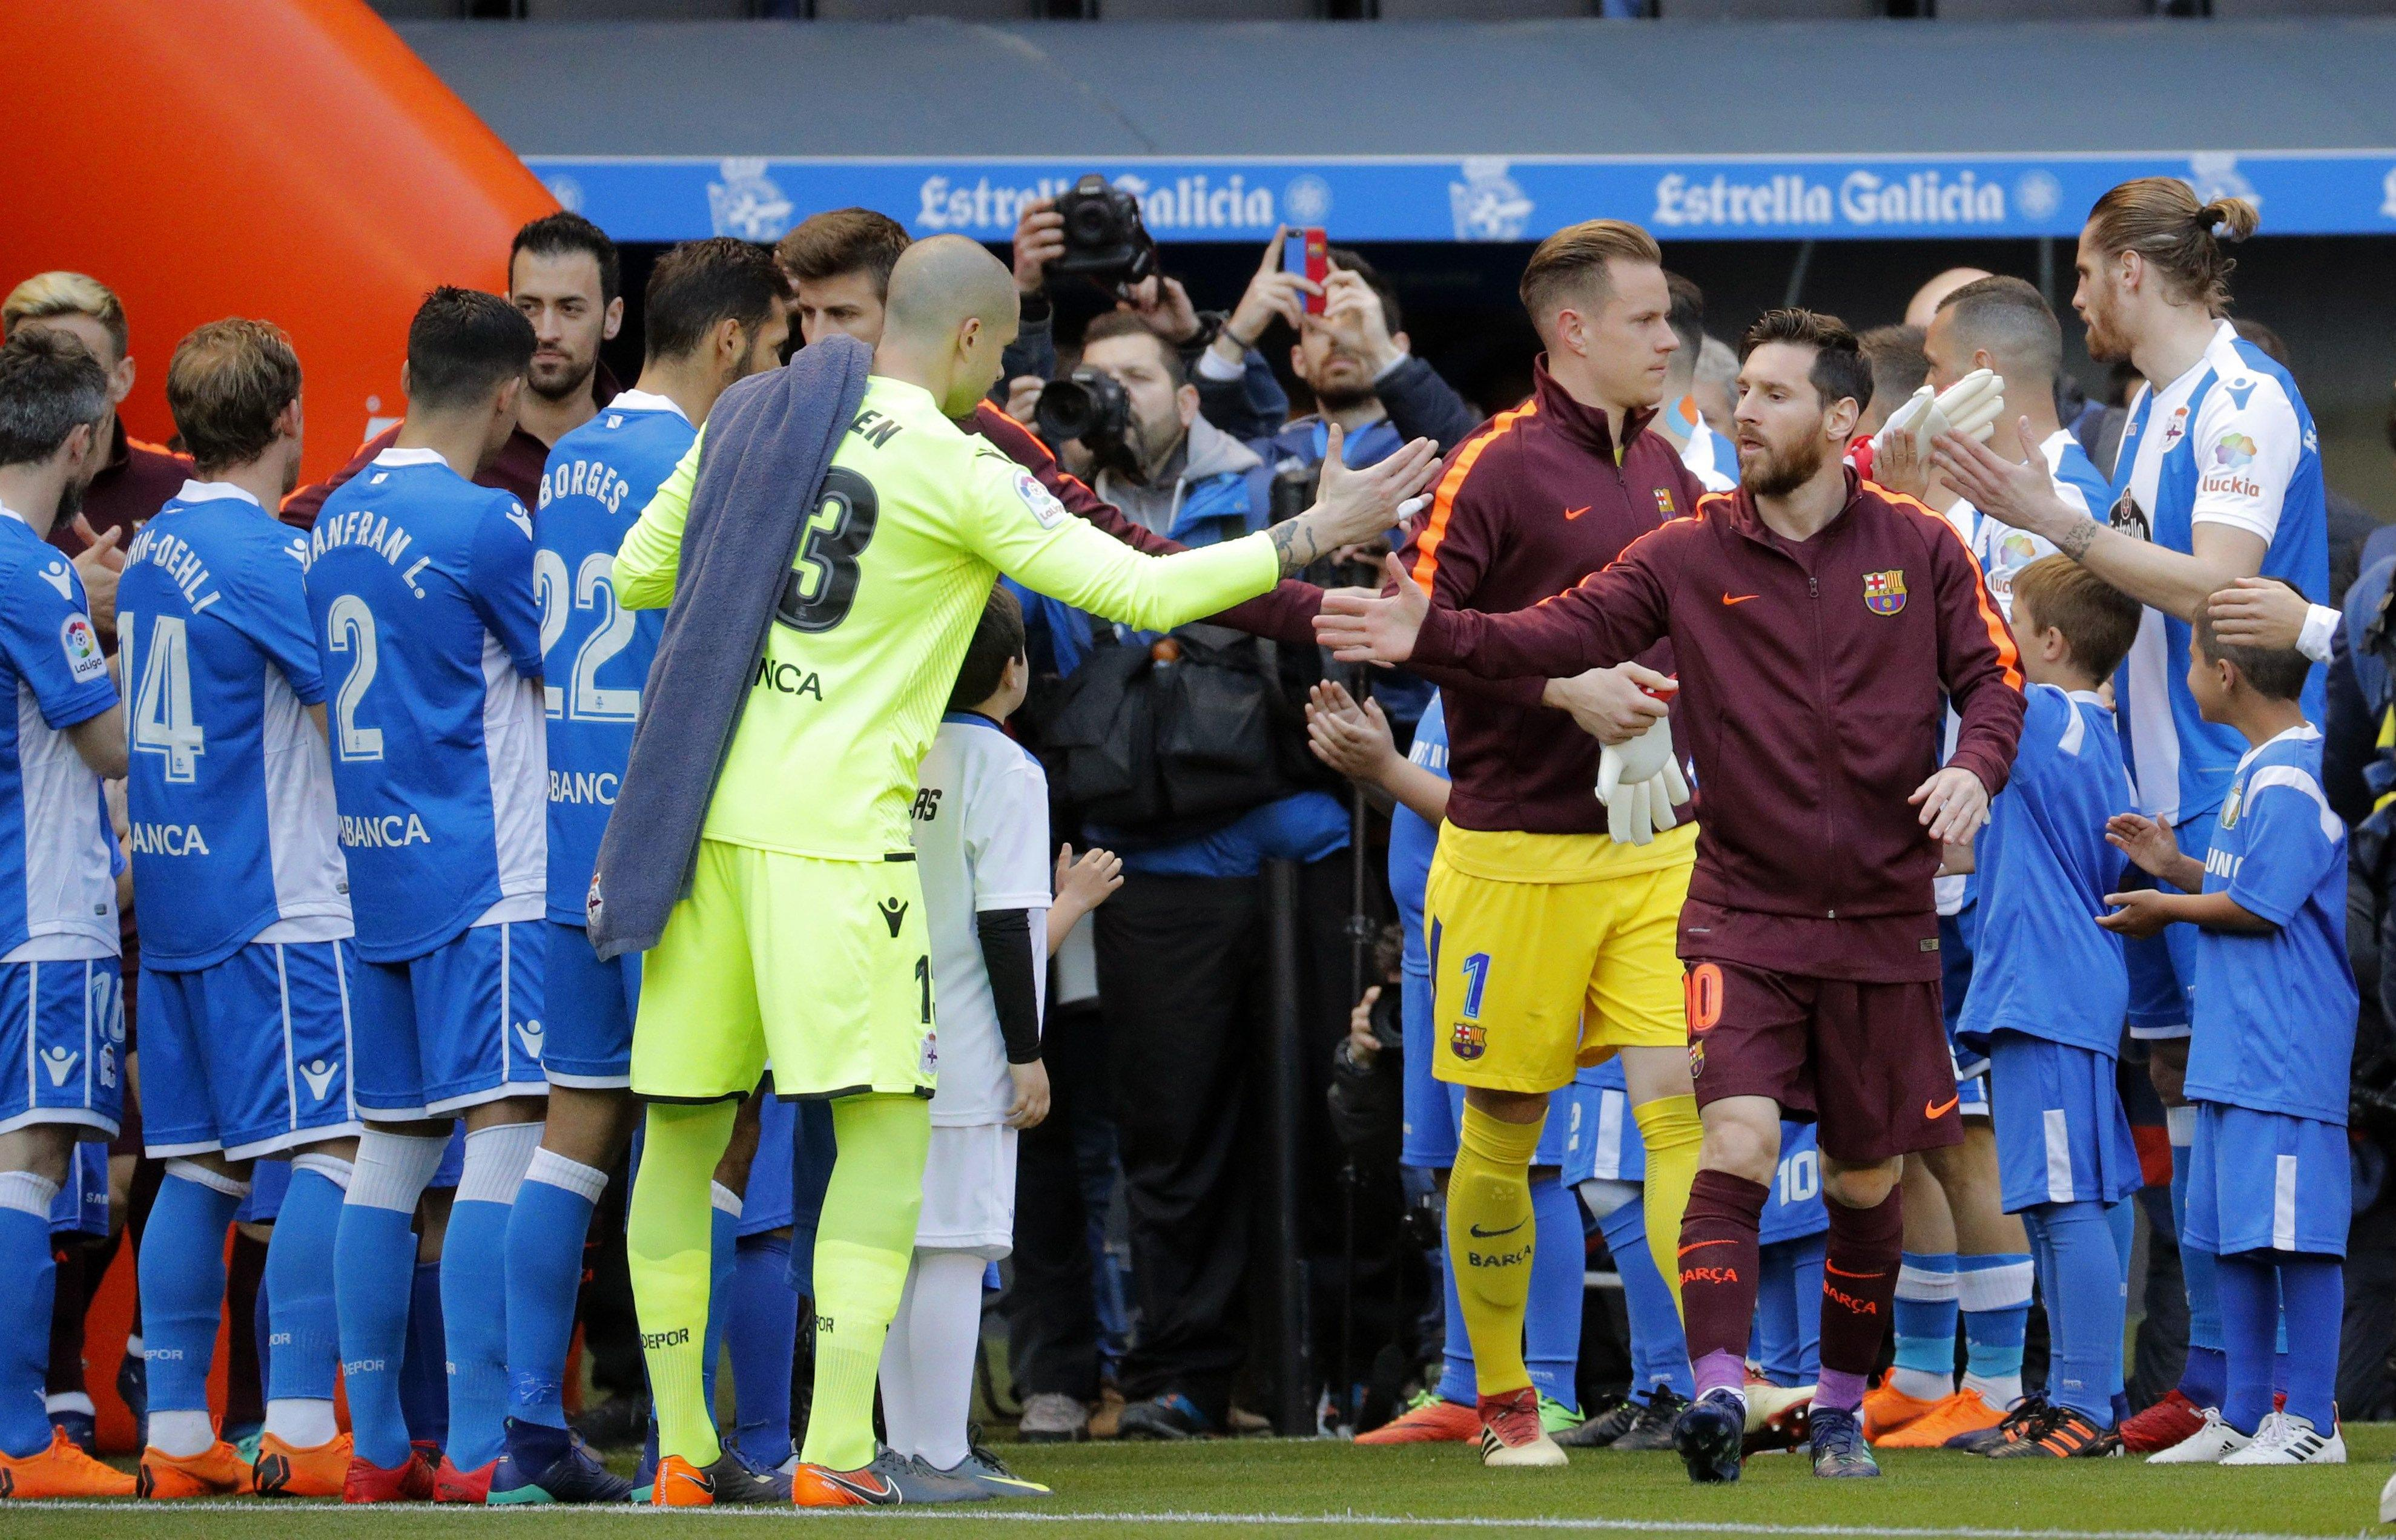 Deportivo honoured Barca's Copa del Rey win with a guard of honour at the weekend